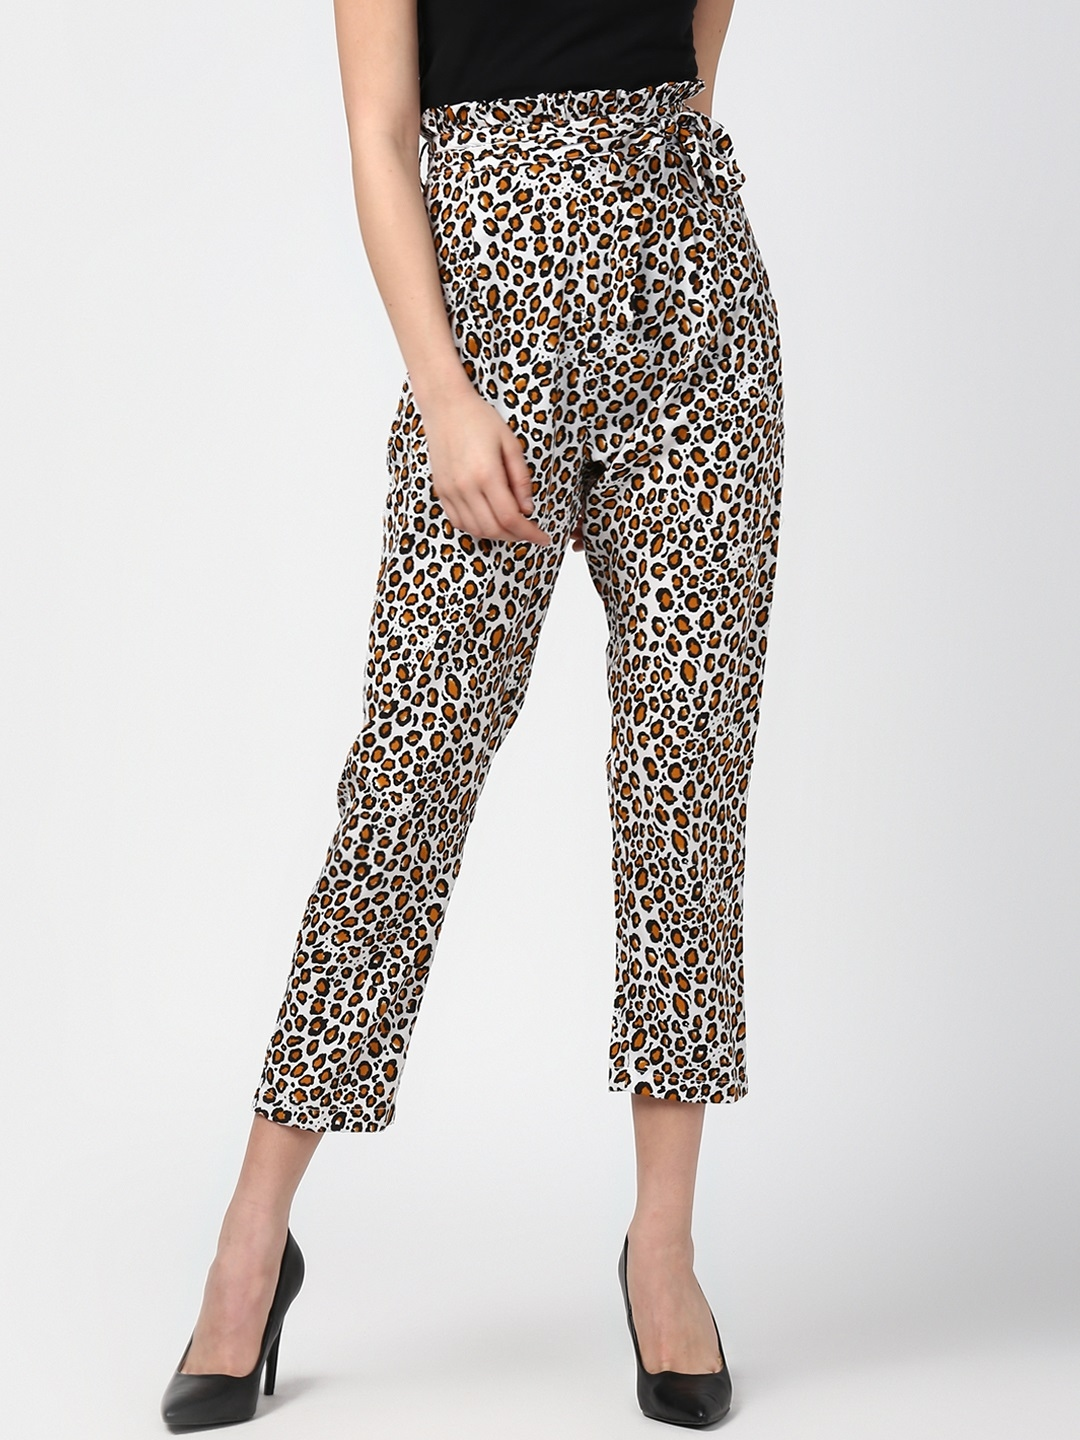 6ae34642dbcf7 StyleStone Women White & Yellow Tapered Fit Animal Print Paperbag Peg  Trousers